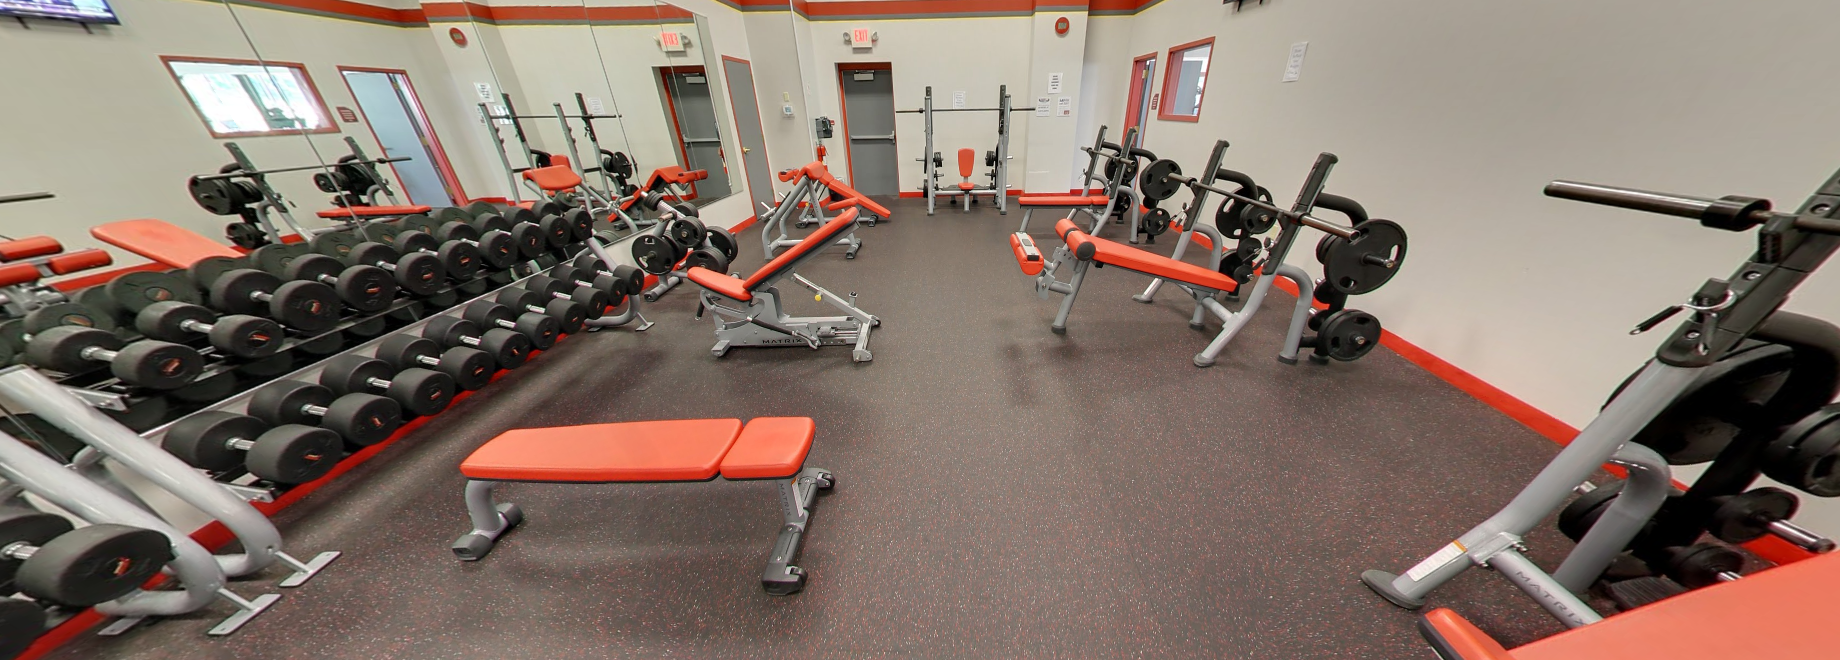 snap fitness promotions 2016